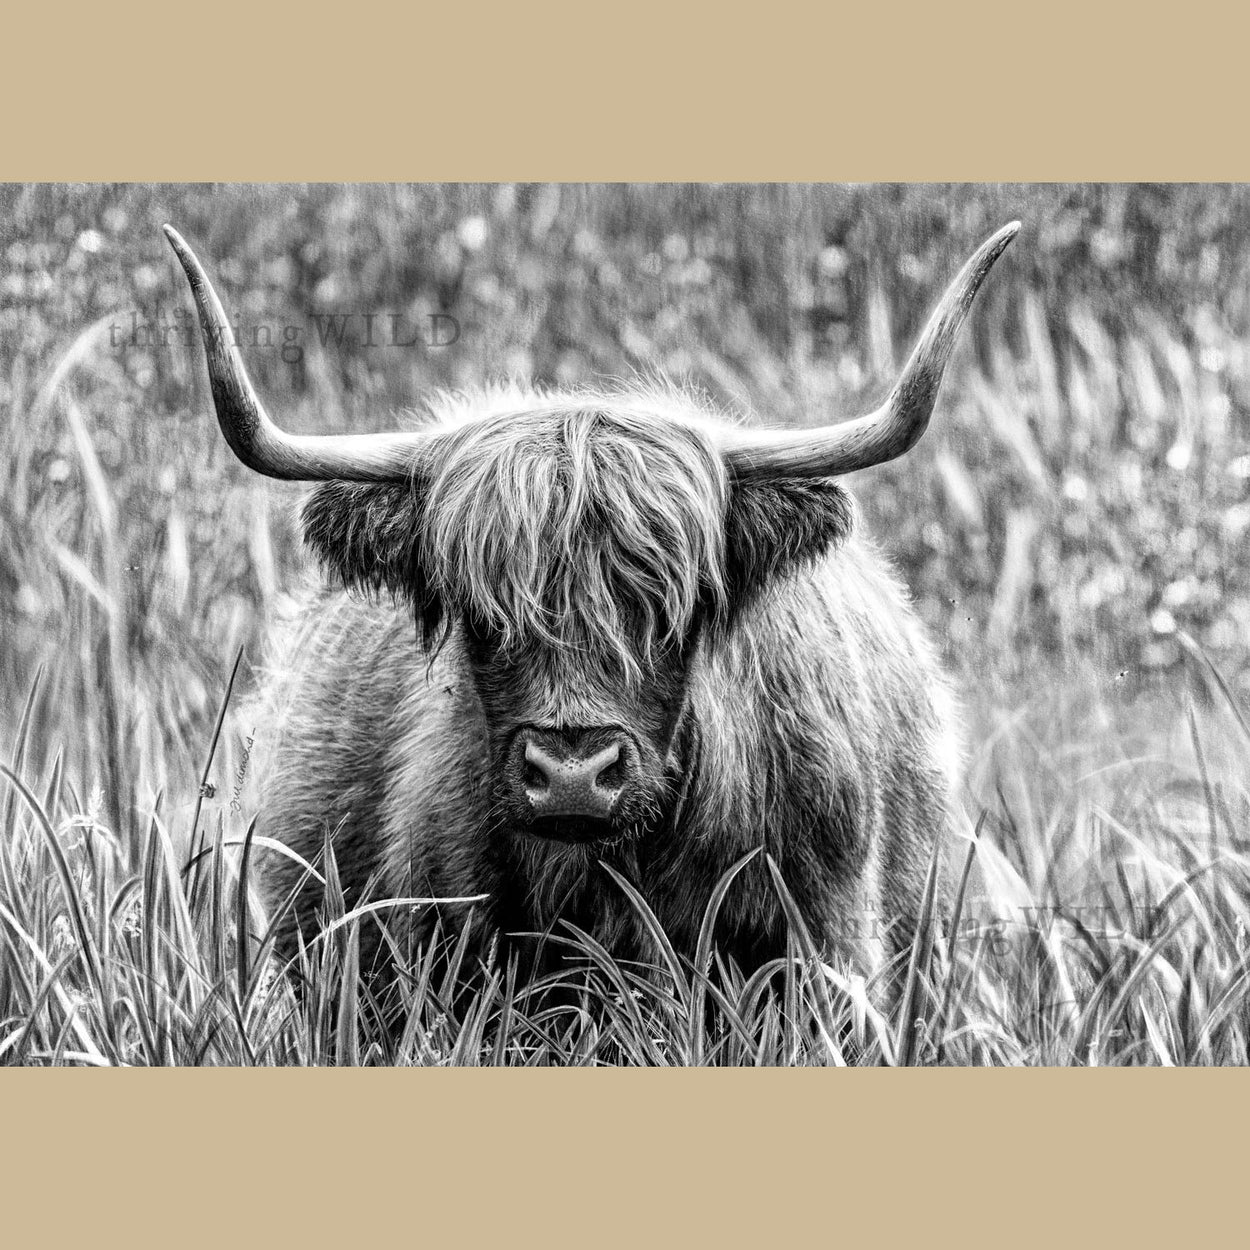 Highland Cow Digital Drawing Procreate - The Thriving Wild